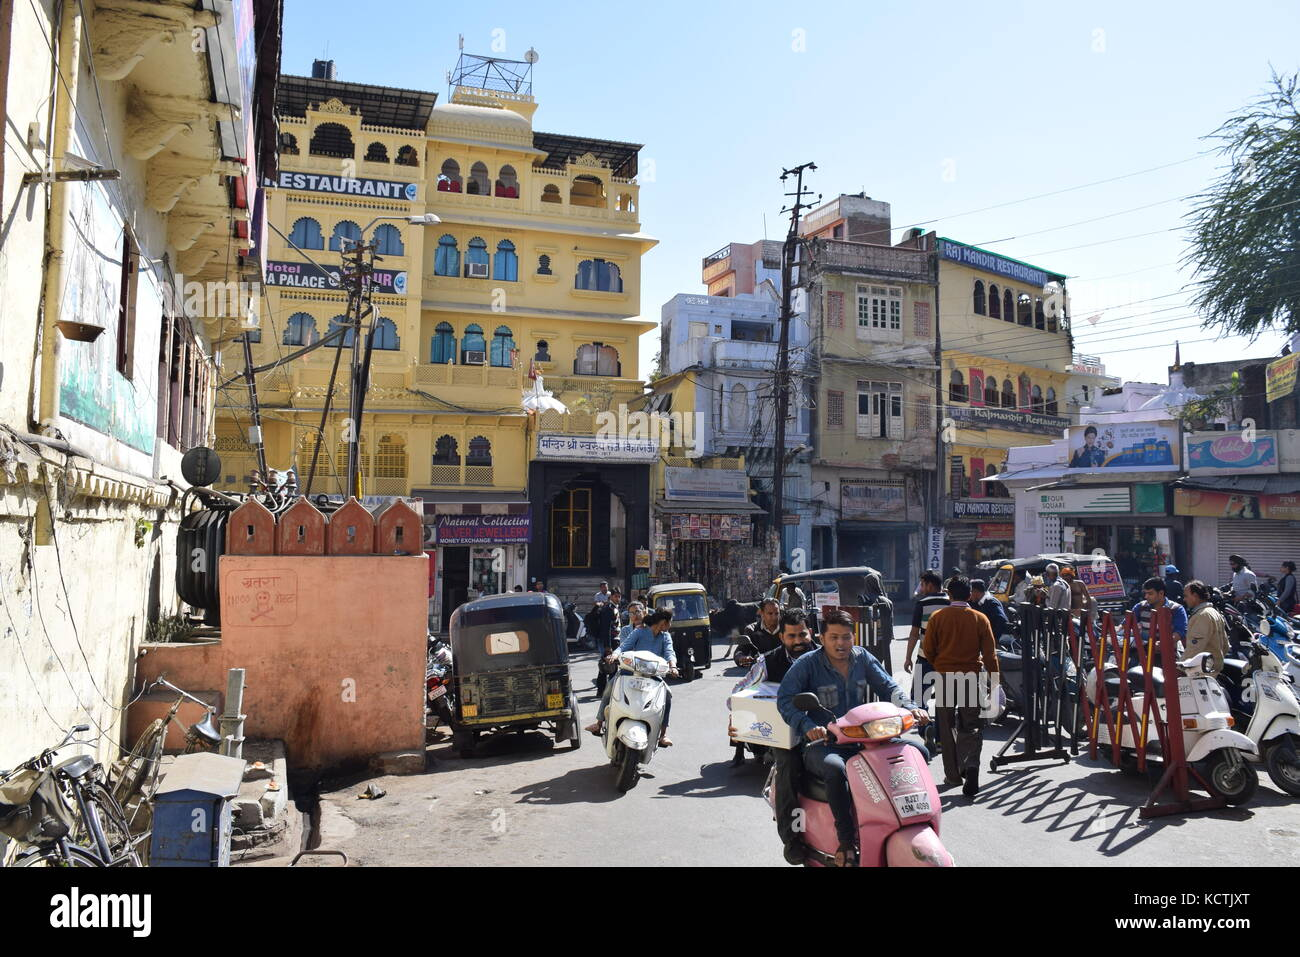 Busy street with colorful houses and shops in Udaipur, Rajasthan - India - Stock Image